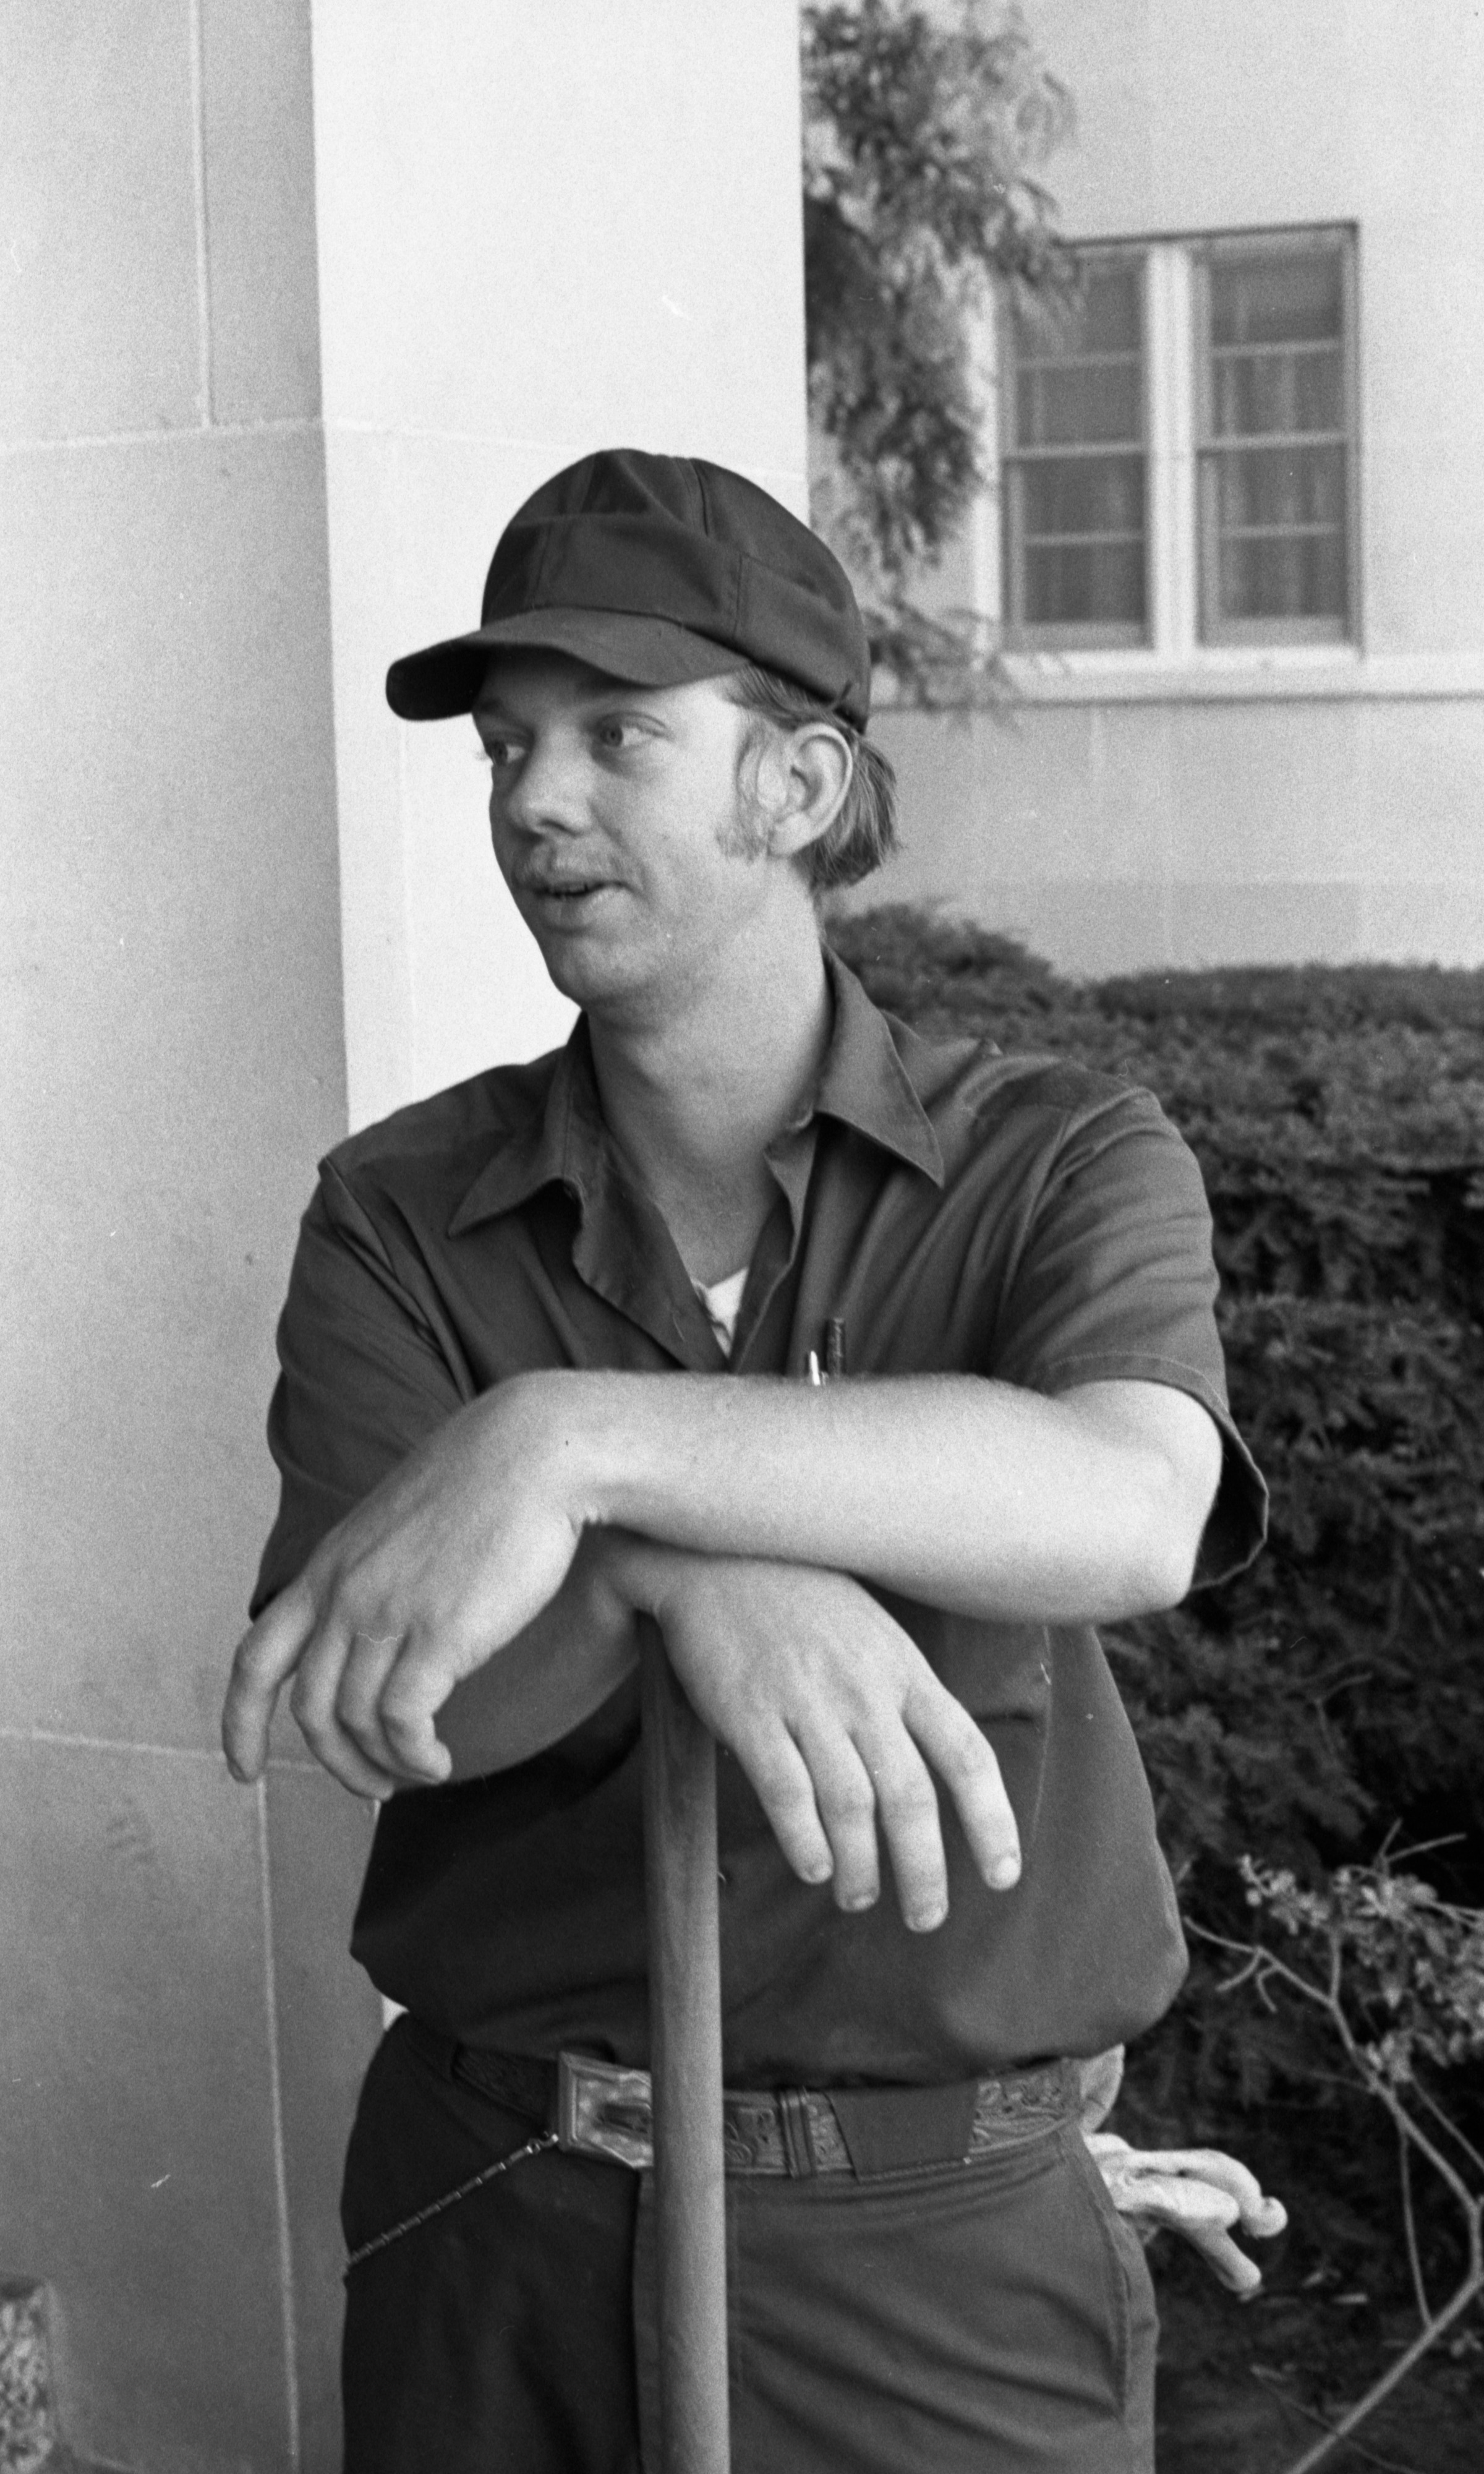 Michael Shank, Groundsman At Ann Arbor's VA Hospital Reacting To Investigation Of VA Nurses, June 1976 image